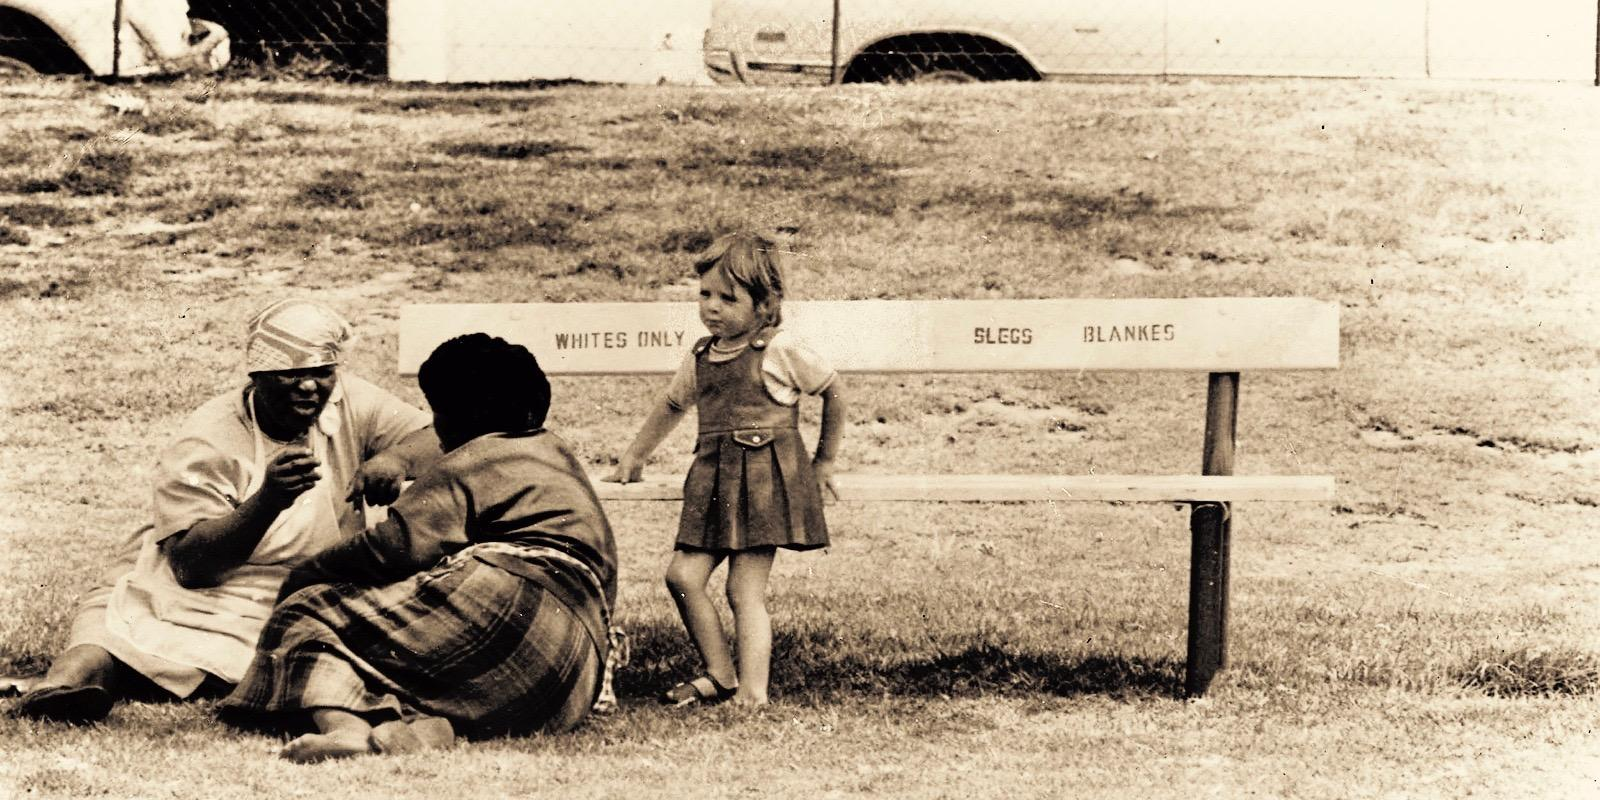 white girl child near a bench for whites only, with two black women sitting on the grass